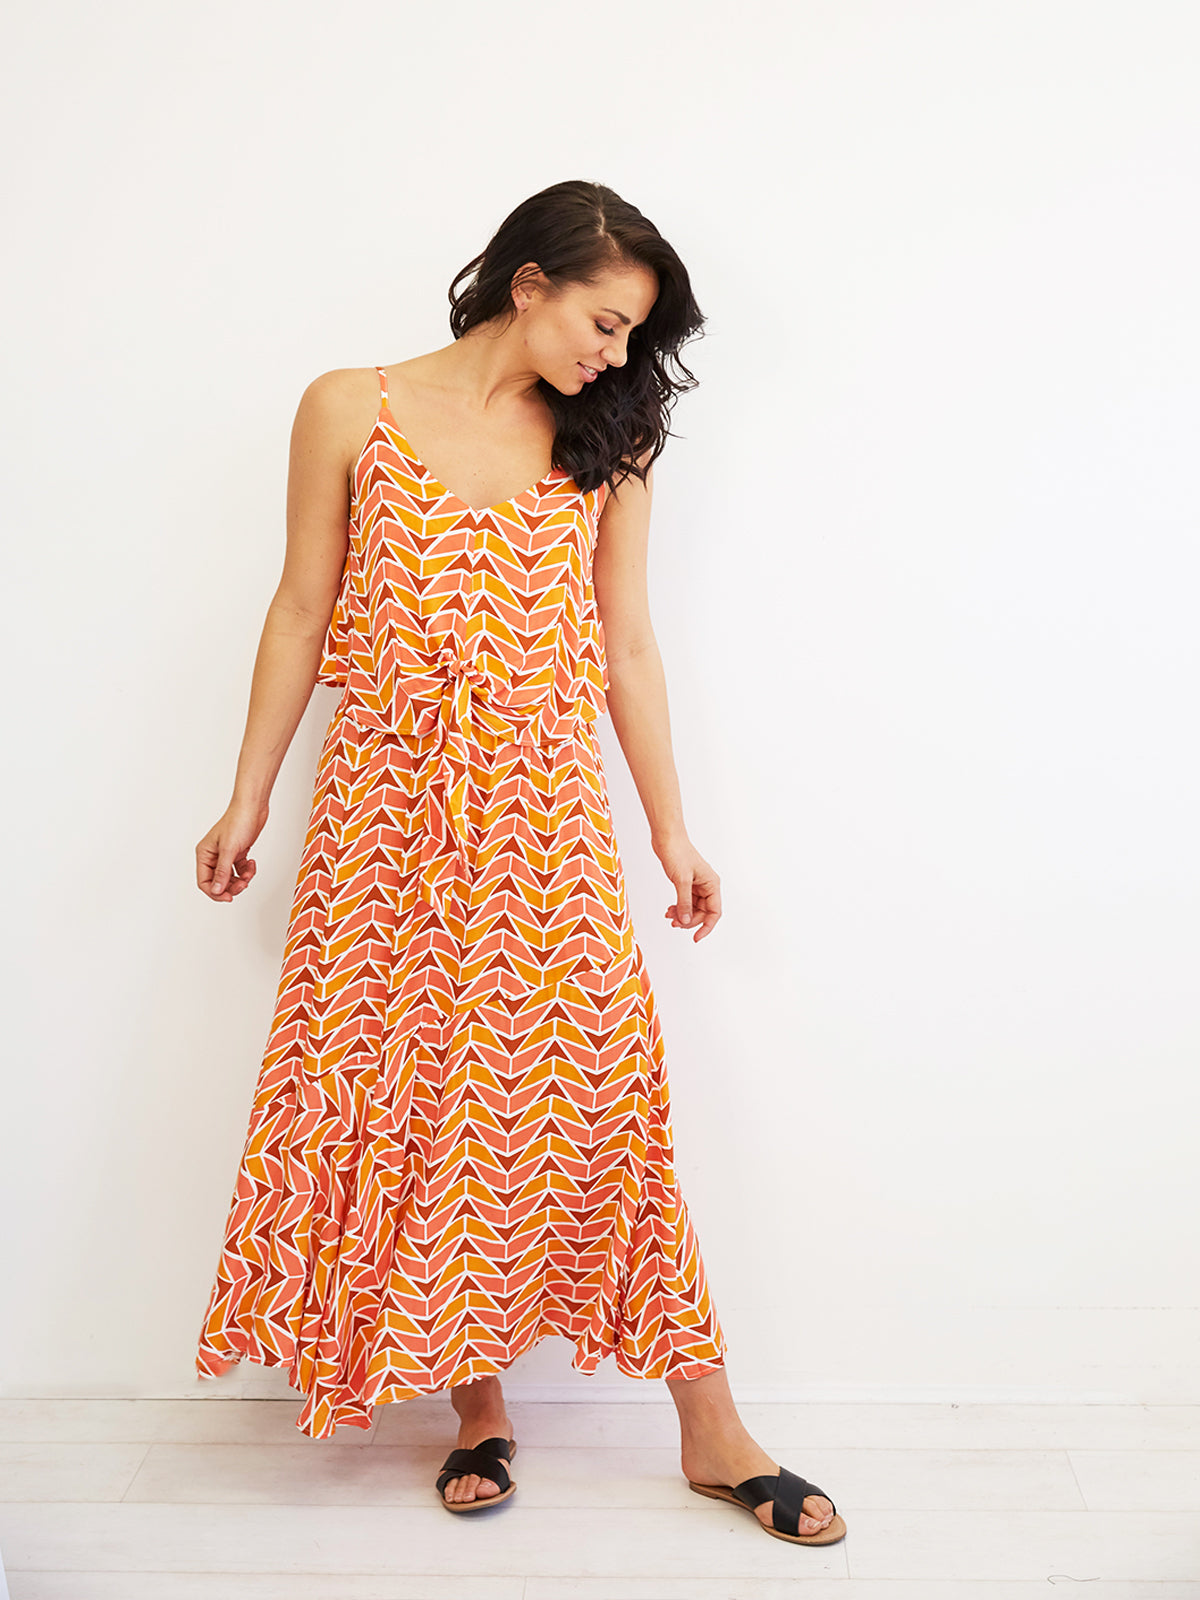 DANCE OF LOVE MAXI DRESS